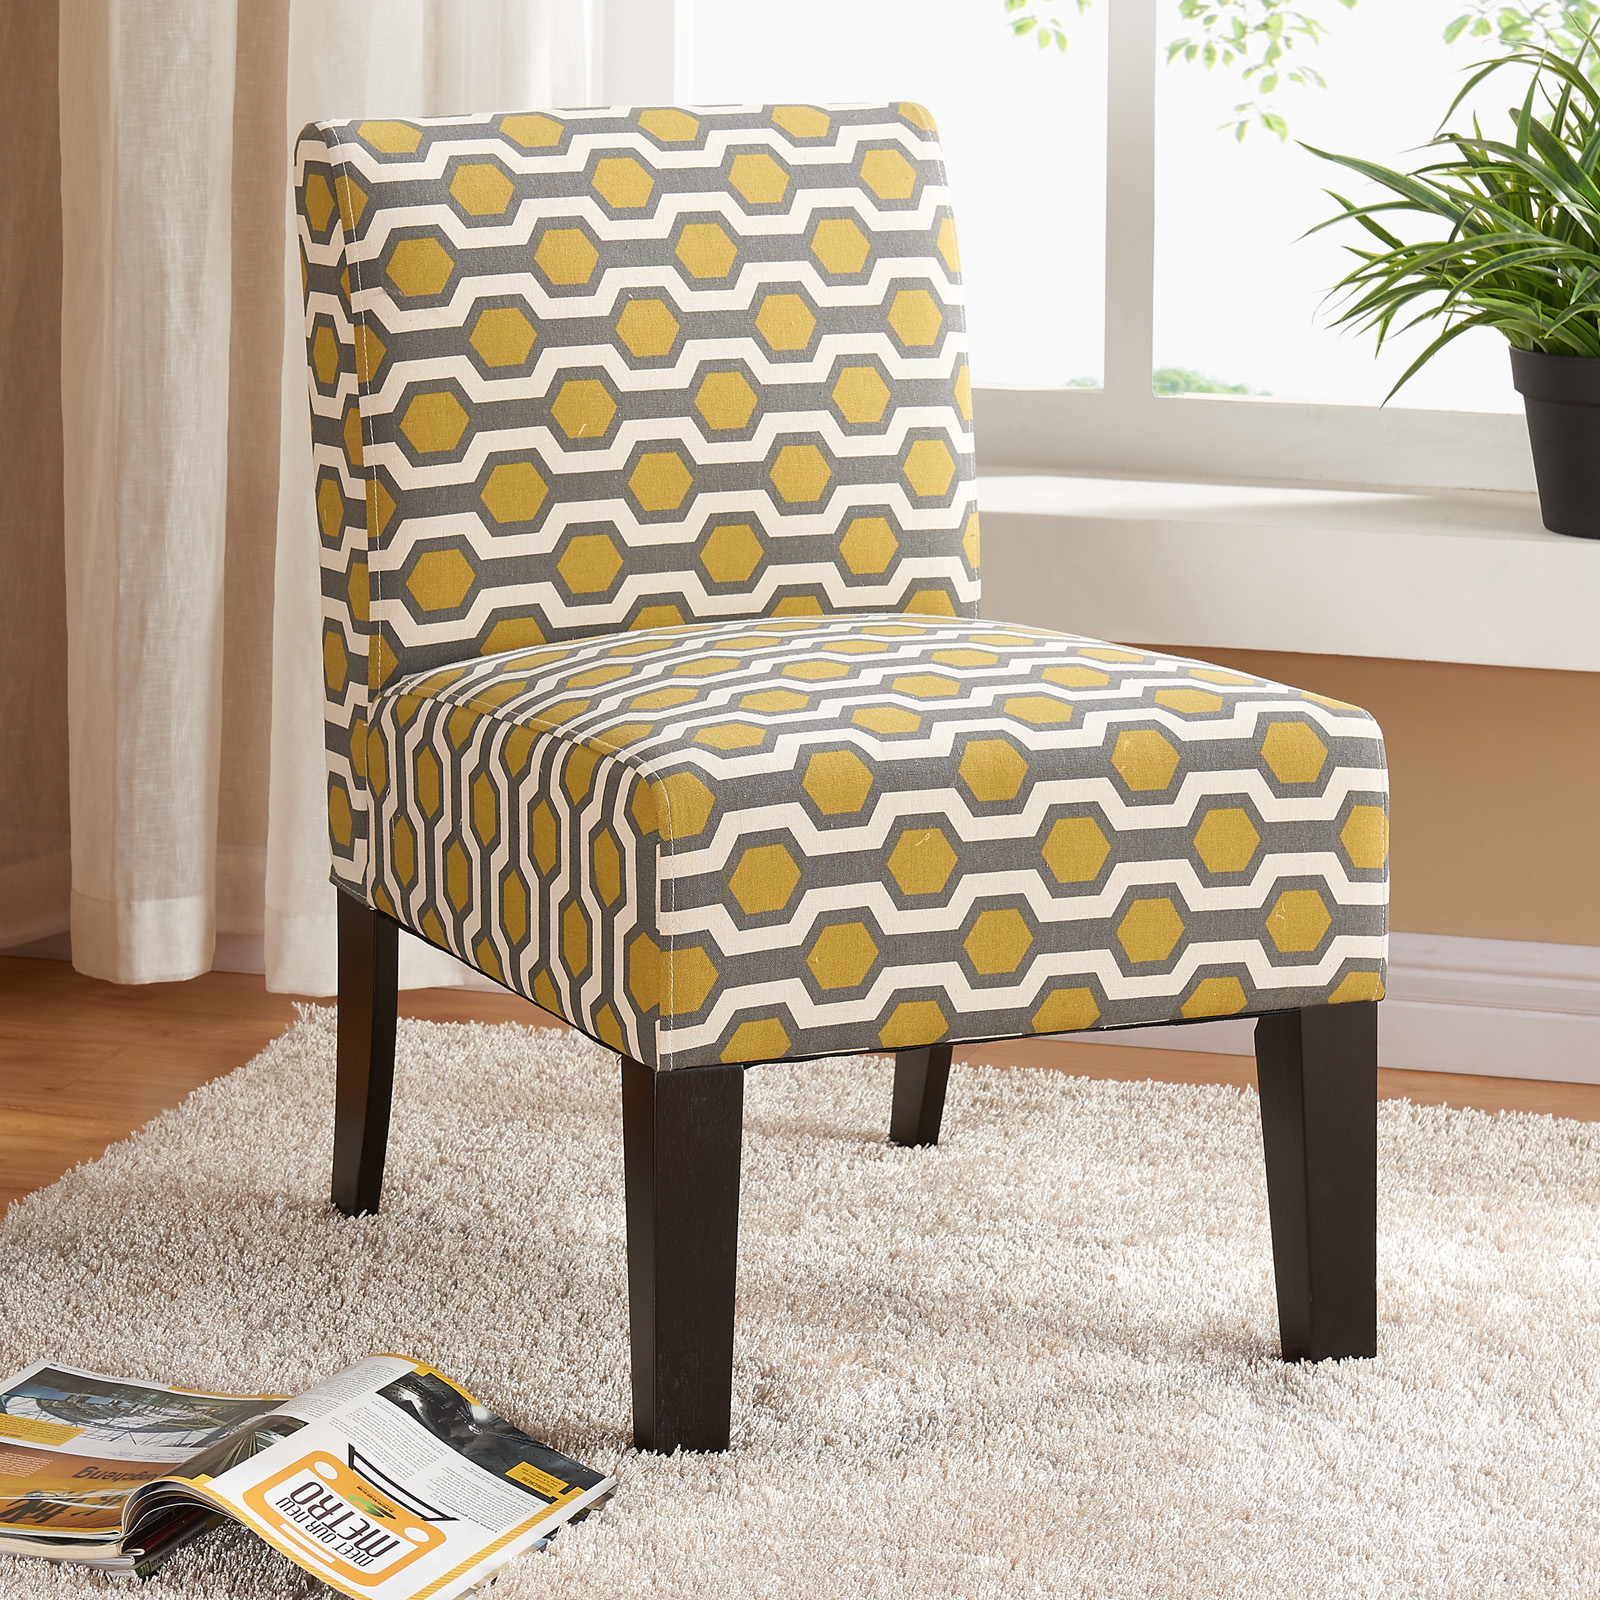 Allegro Side Chair   Gray/Yellow Hex